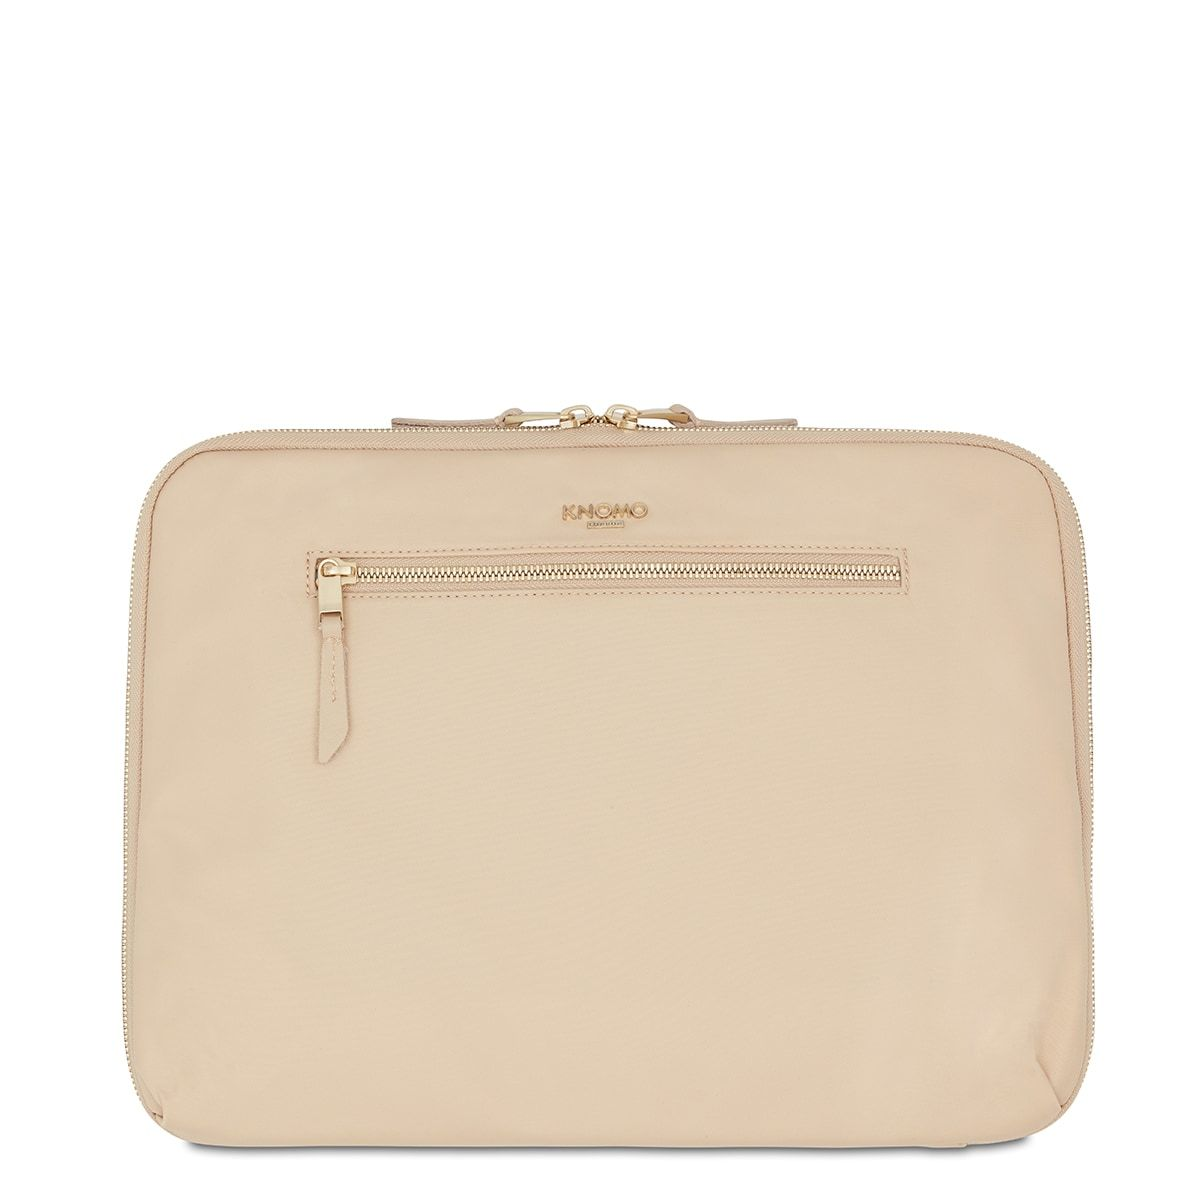 "KNOMO Knomad X-Body Organiser Tech Organiser From Front 13"" -  Trench Beige 